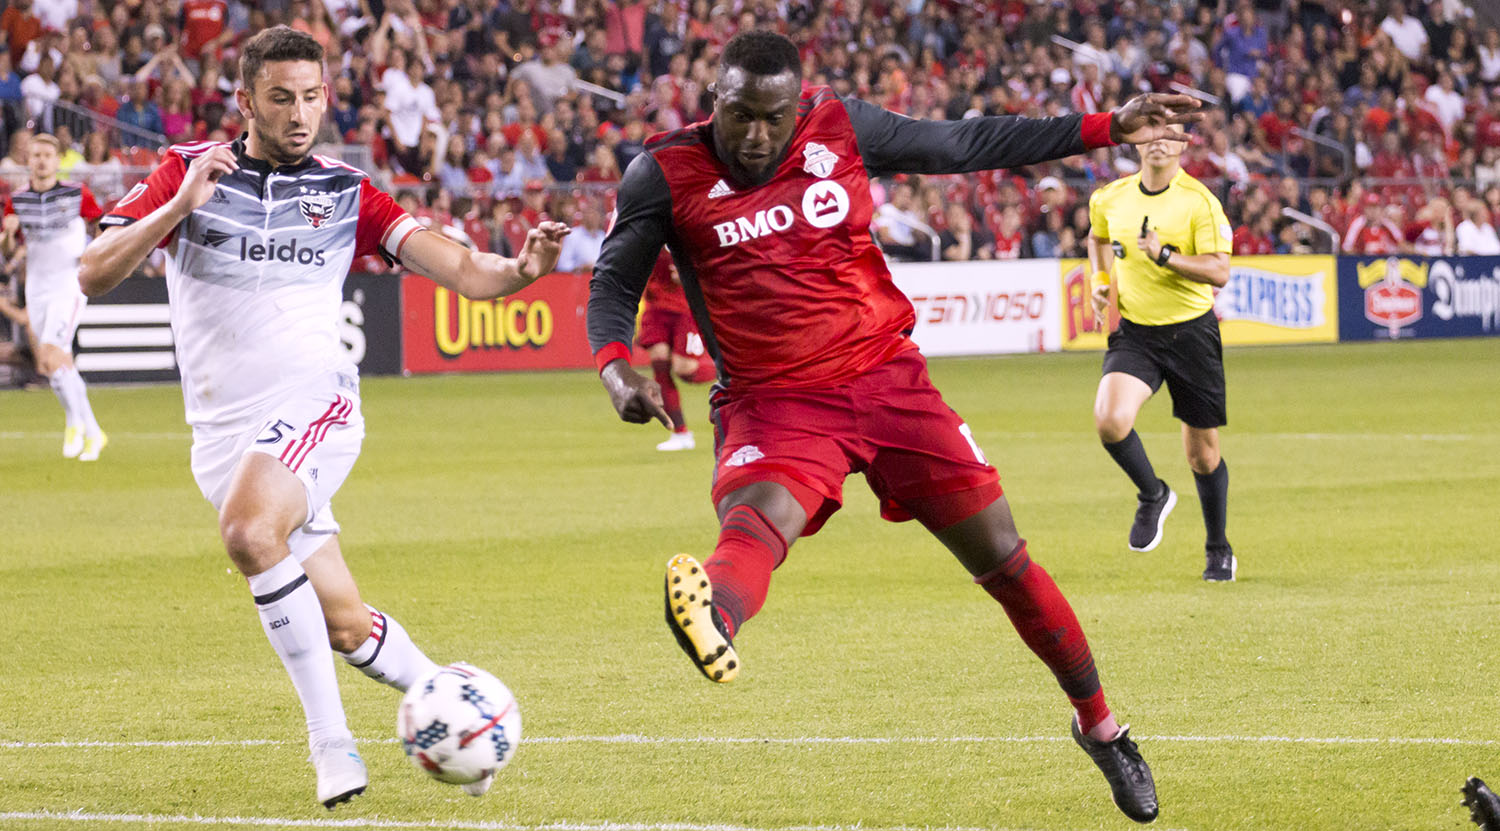 Jozy Altidore strikes the game winning goal into the back of the net on June 17, 2017 against DC United. Image by Dennis Marciniak of denMAR Media.